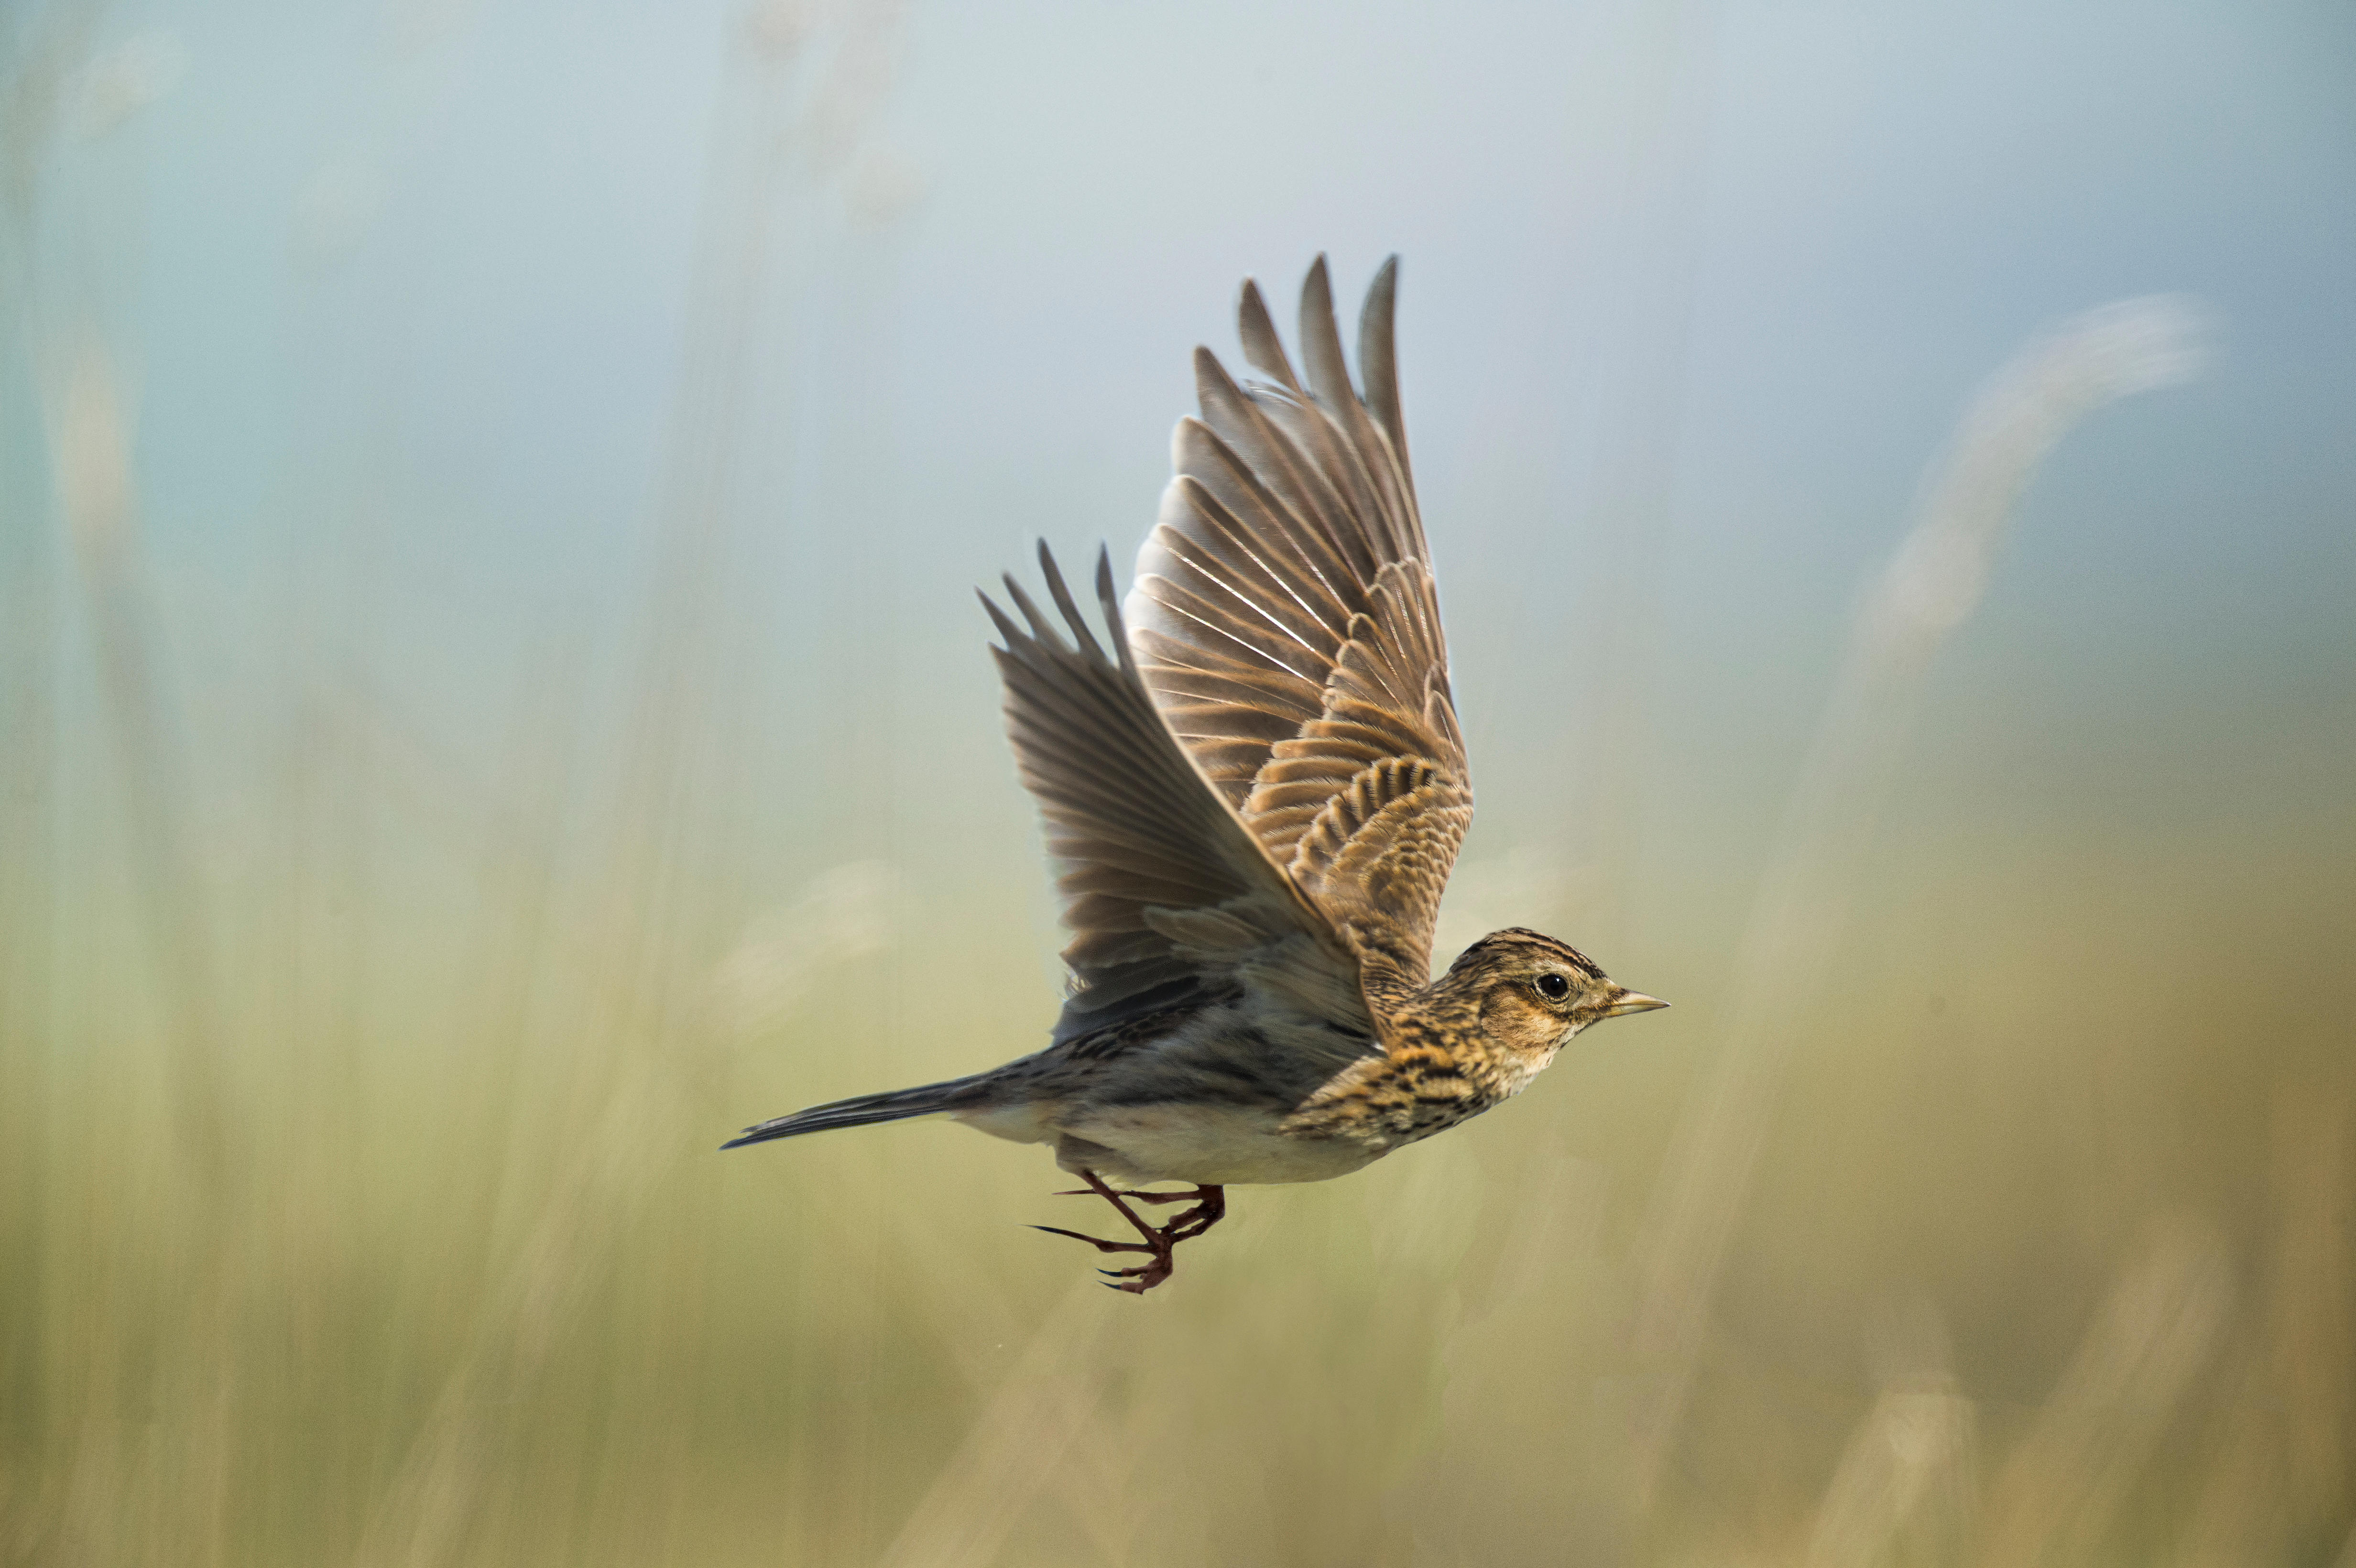 Skylarks: the birds that inspired countless poets and one of Britain's most revered music pieces - Country Life